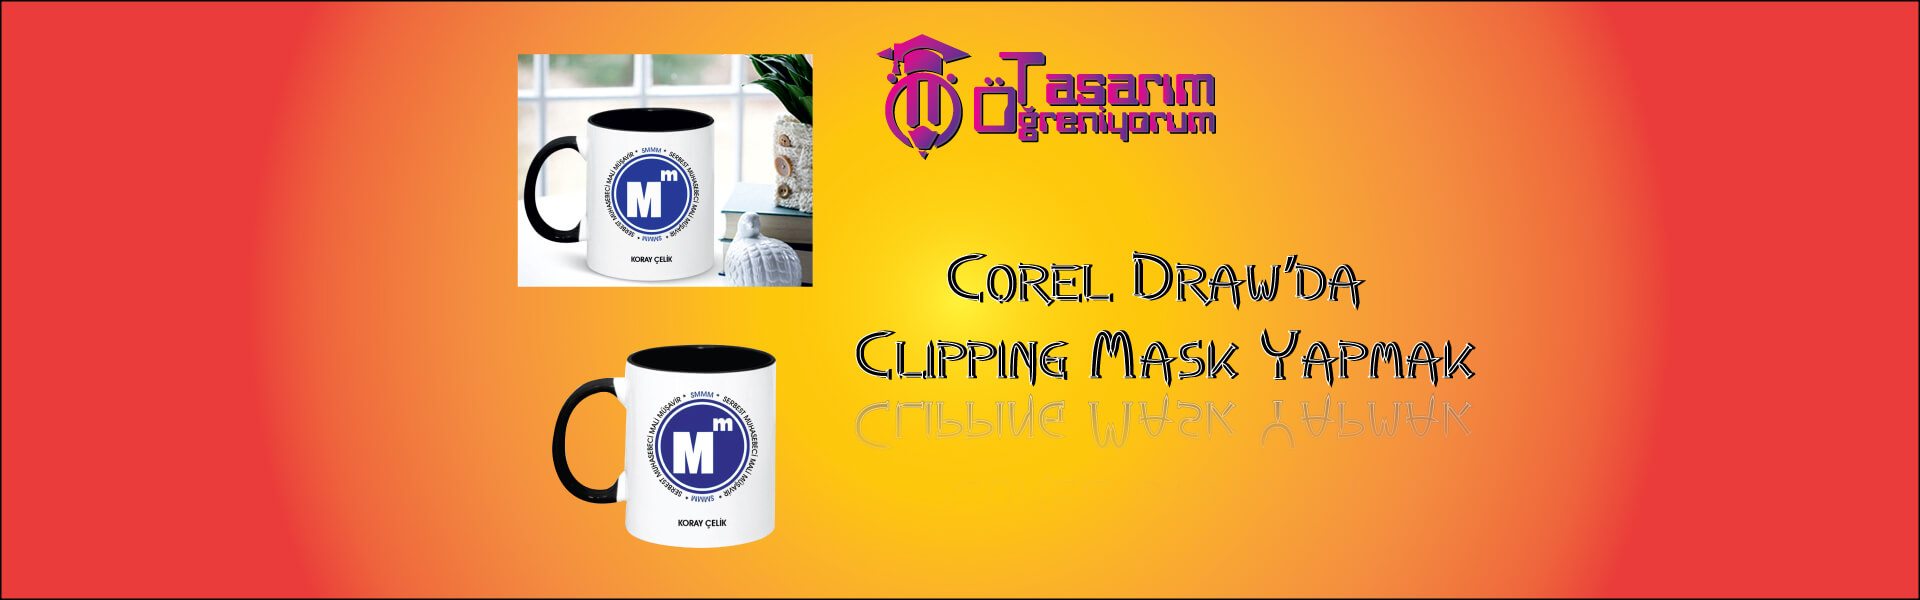 Photo of Corel Draw Clipping Mask Yapmak